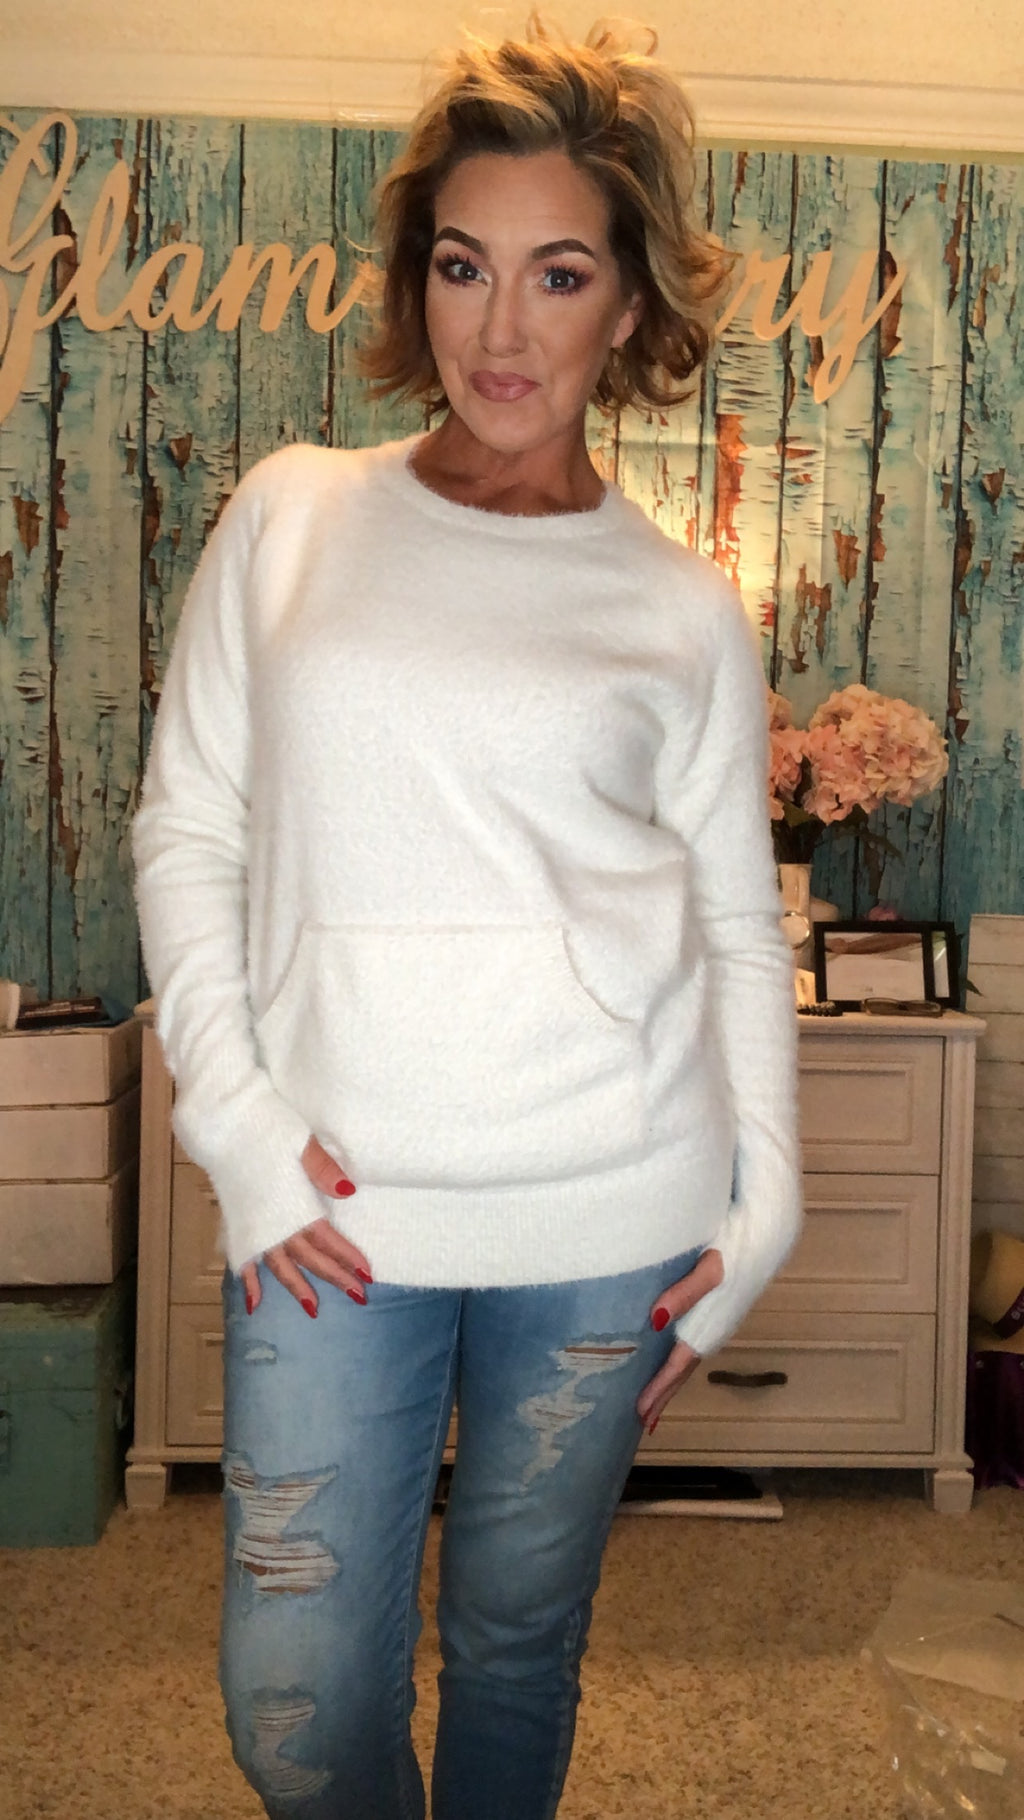 BRUSHED KNIT COZY SWEATER - IVORY (THUMBHOLE SLEEVES)